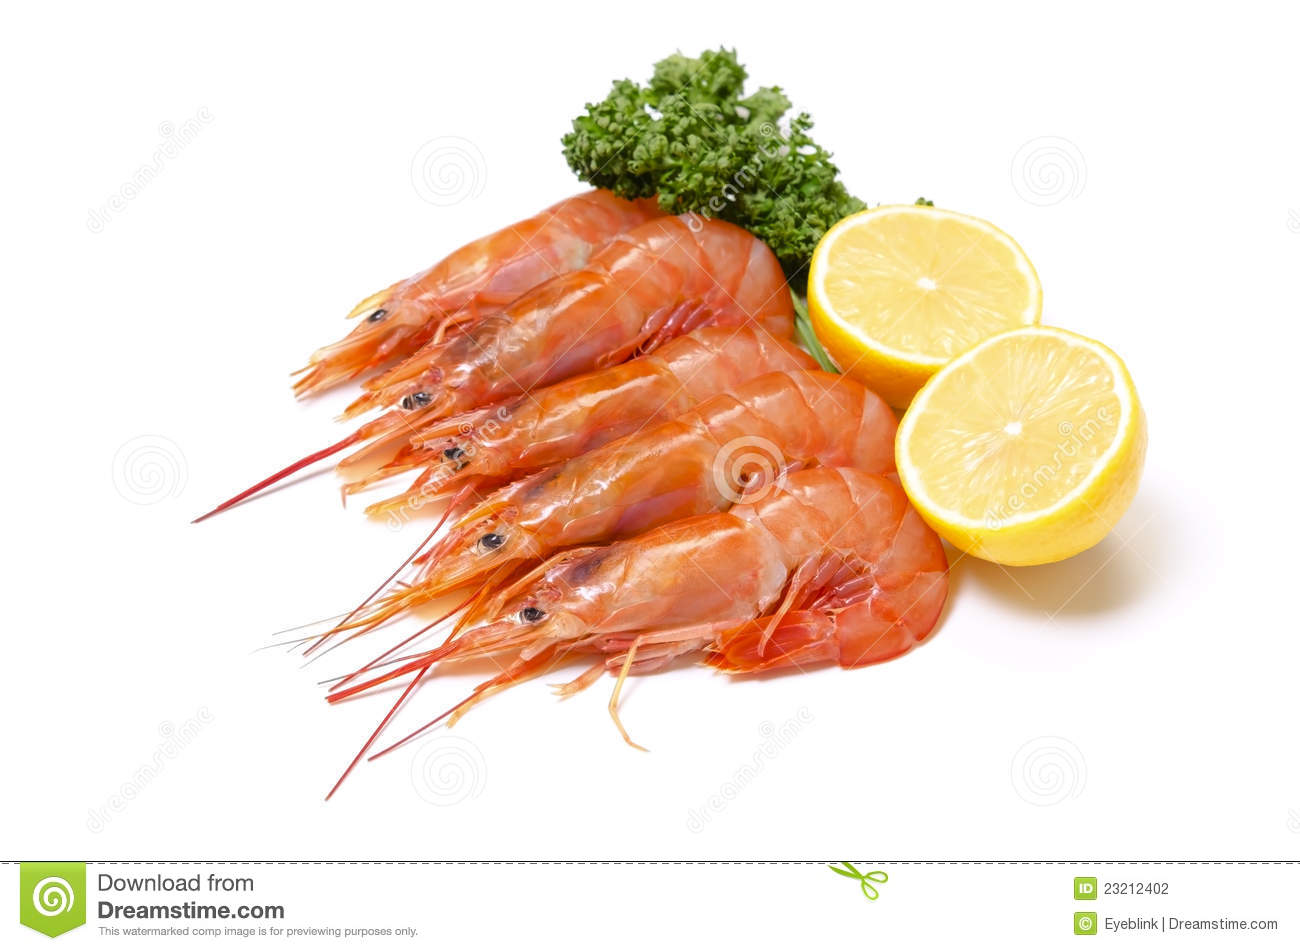 Argentine red shrimp stock photo. Image of shellfish - 23212402